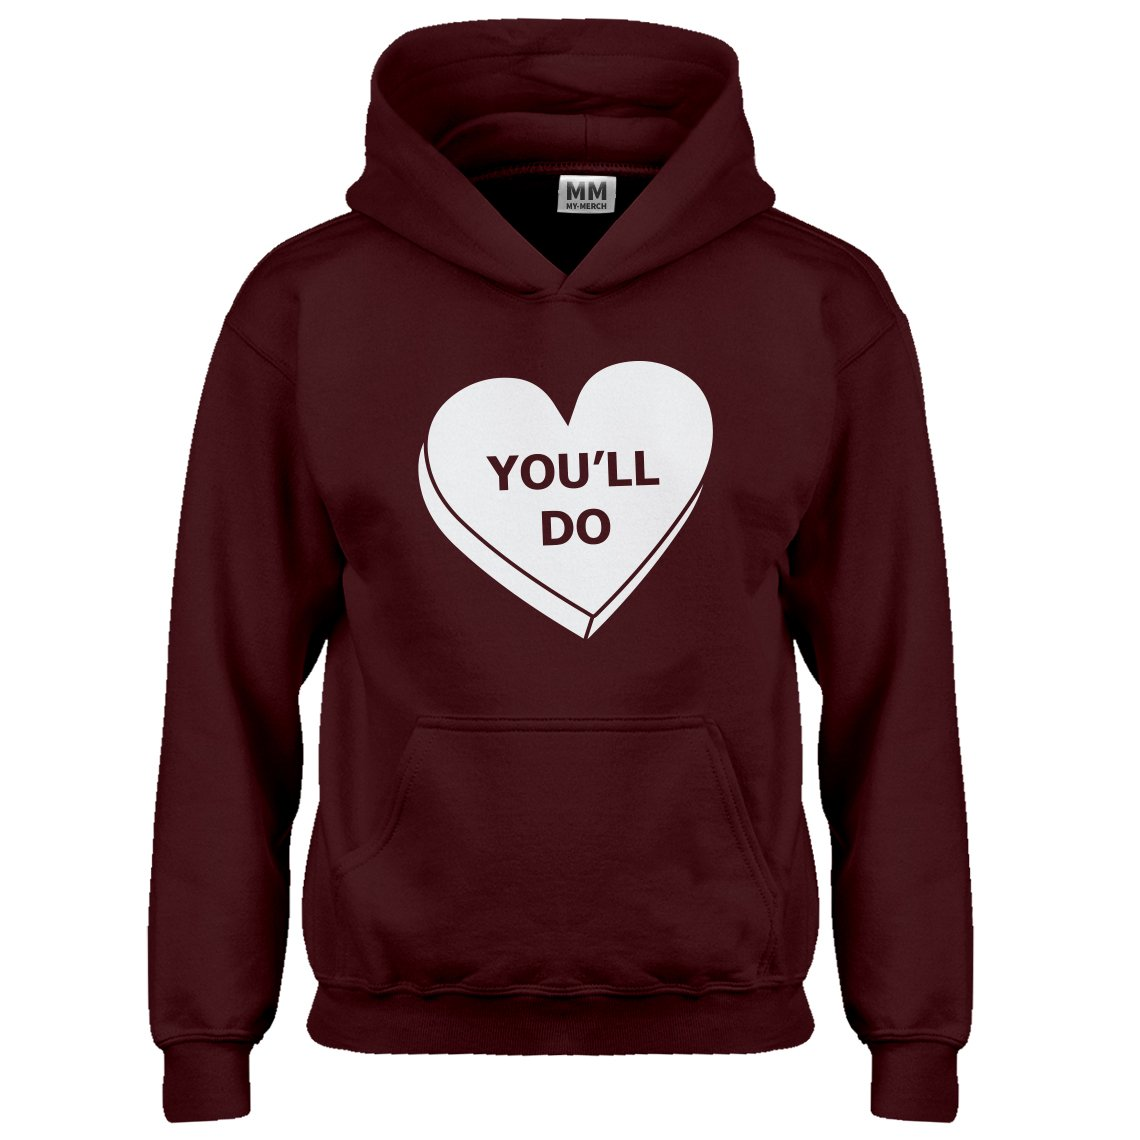 Indica Plateau Kids Hoodie You'll Do Valentines Day Small Maroon Hoodie